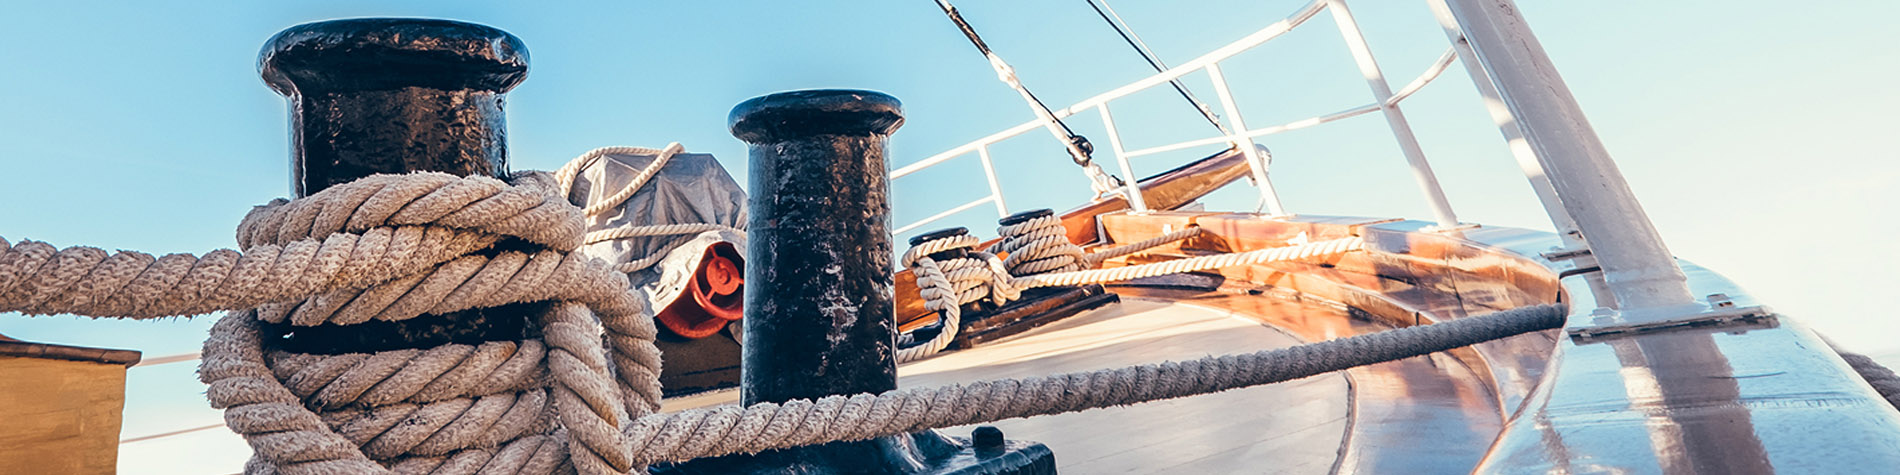 Boat deck and mooring lines